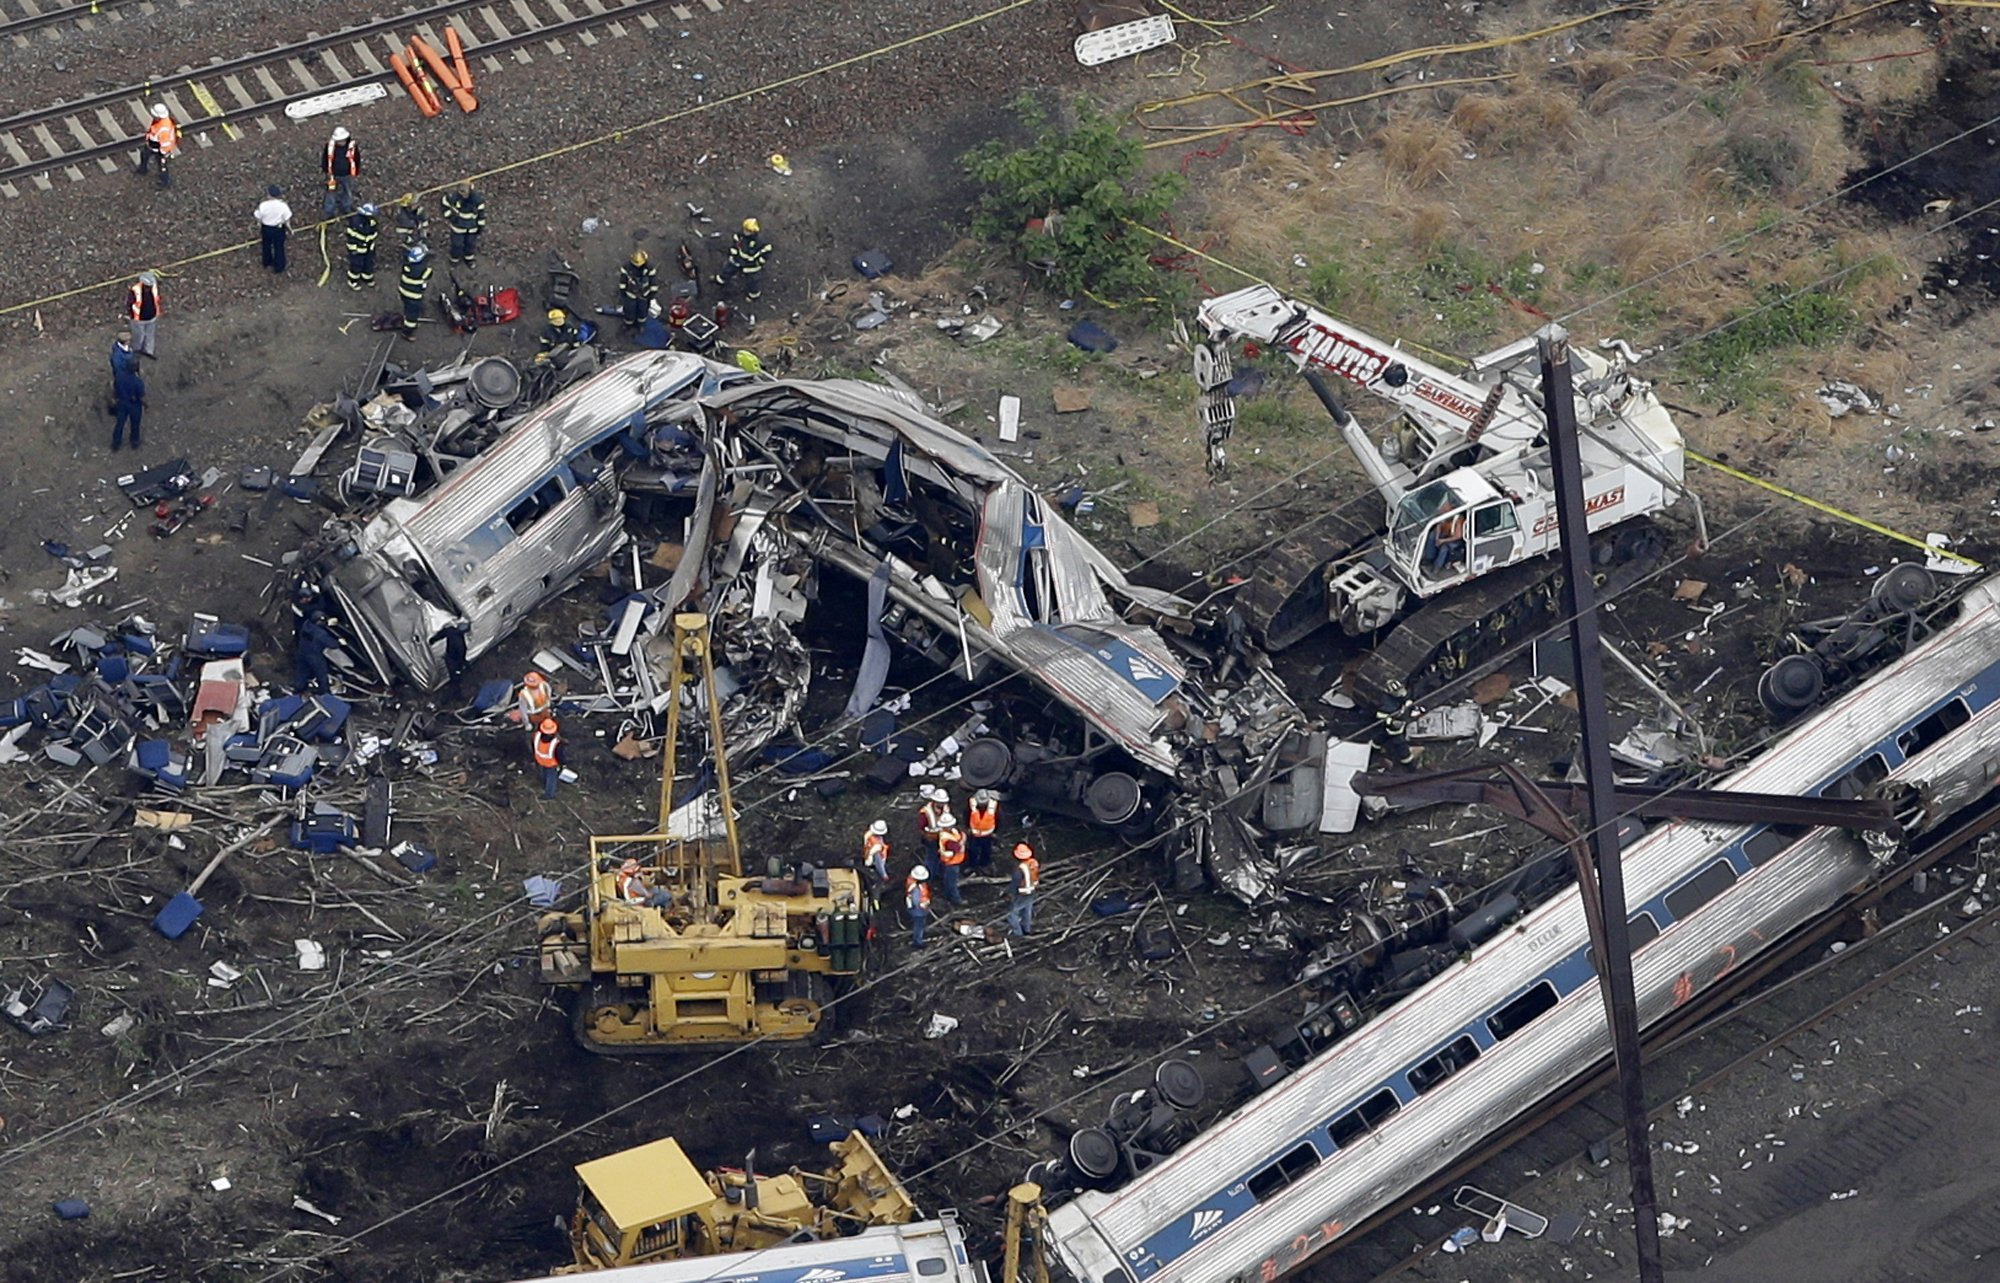 service of reflection held at site of amtrak train